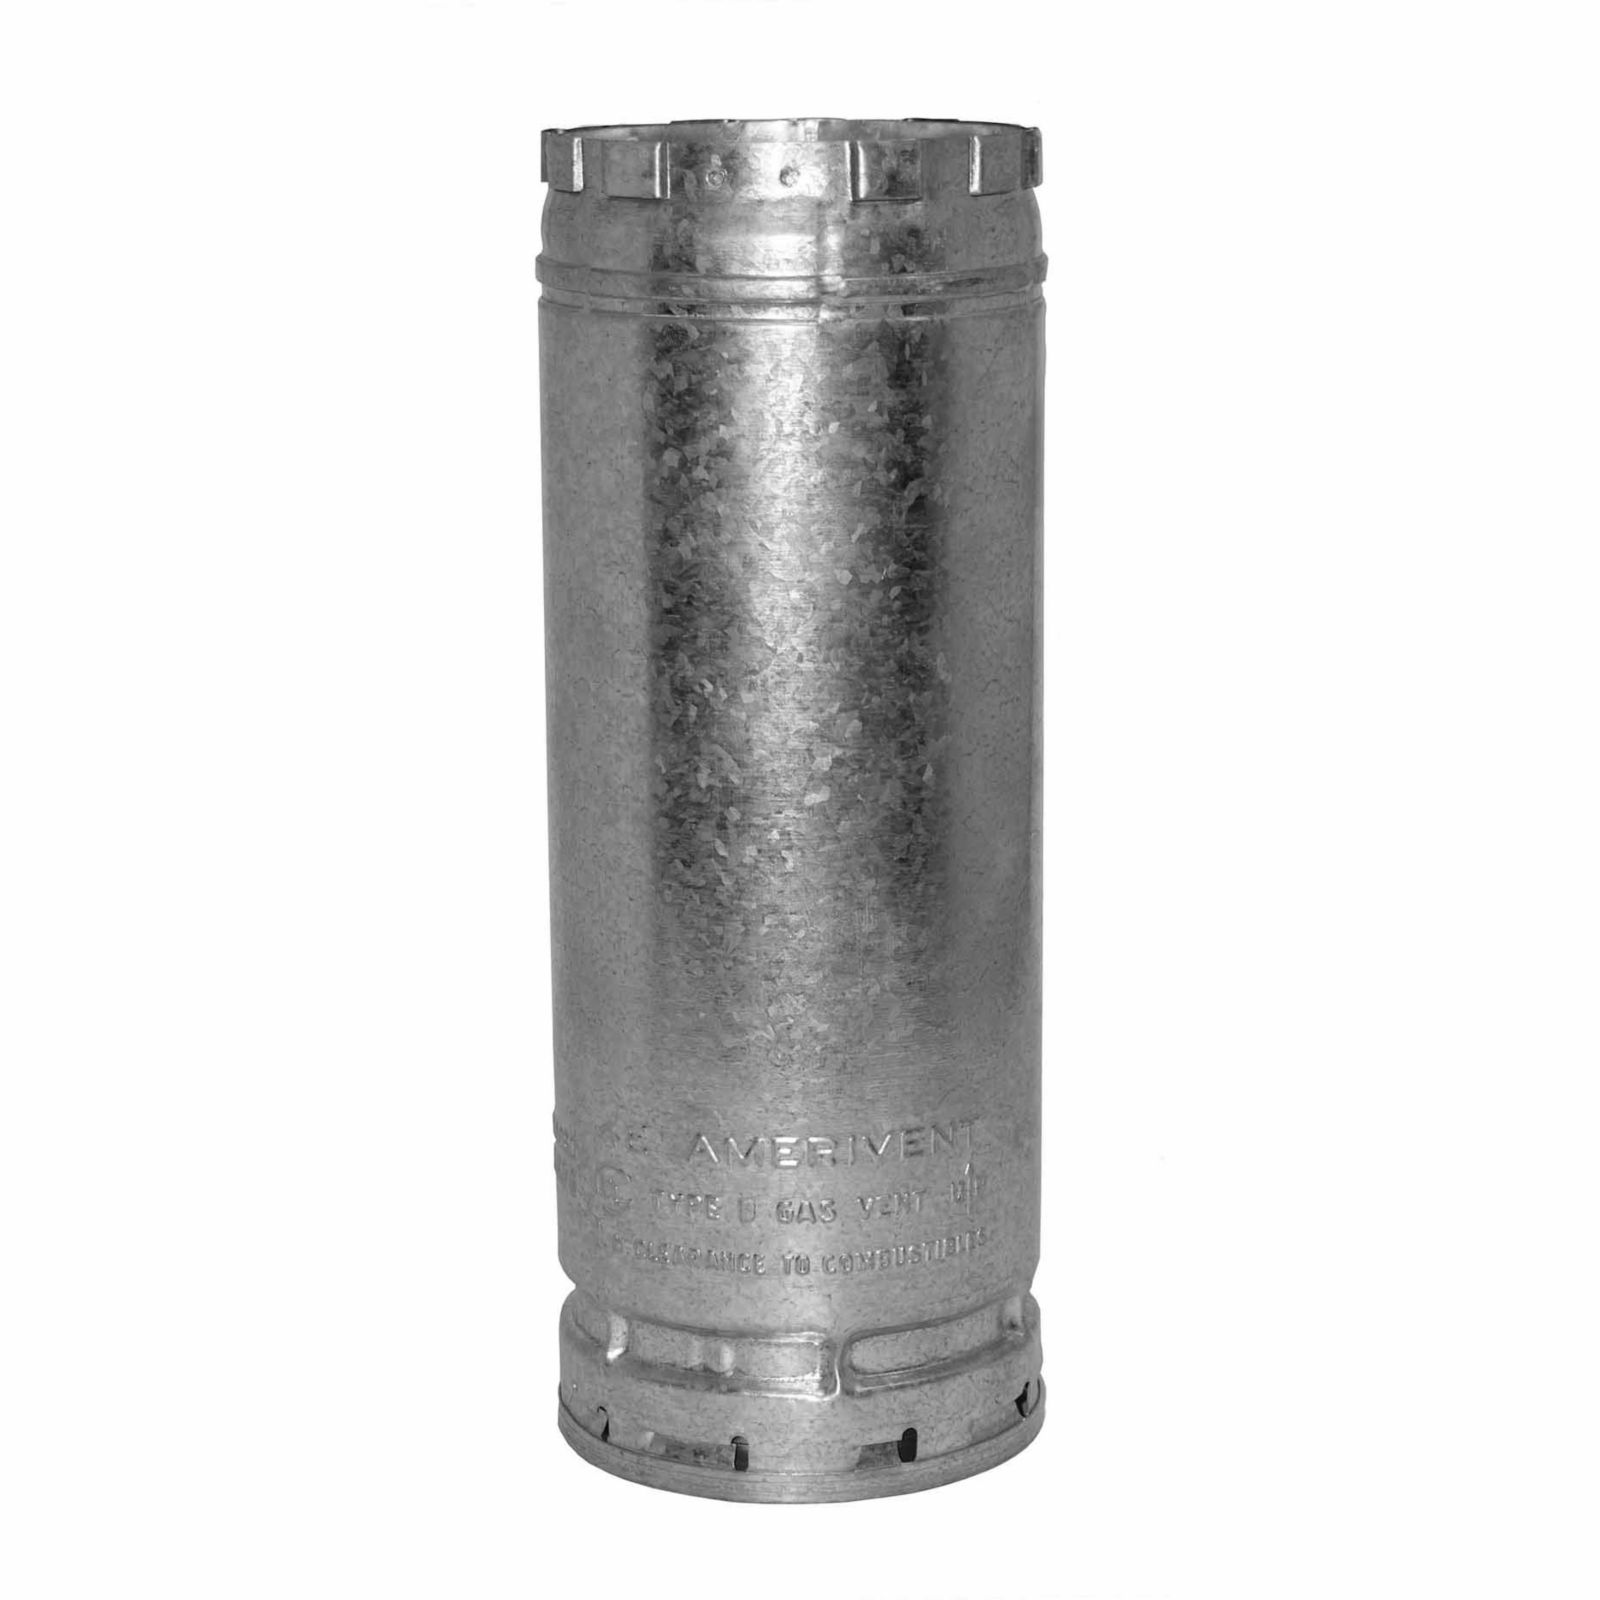 "AmeriVent 3E5 - Pipe Section Type B Gas Vent, 3"" Round X 60"" Length"